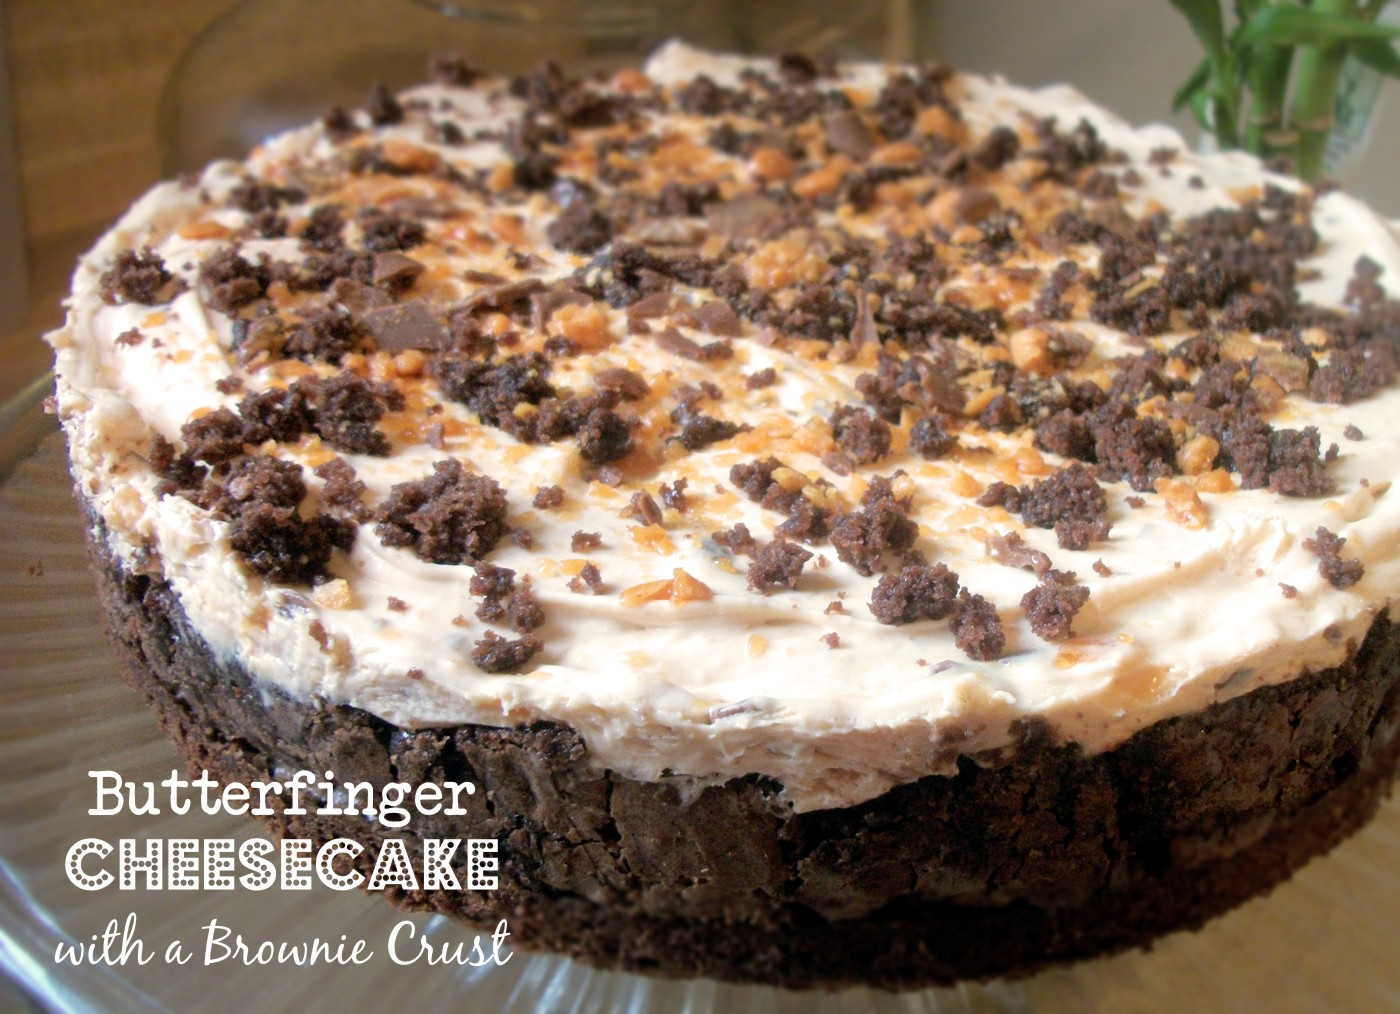 Brownie Crusted Butterfinger Cheesecake | Heart of a Country Home